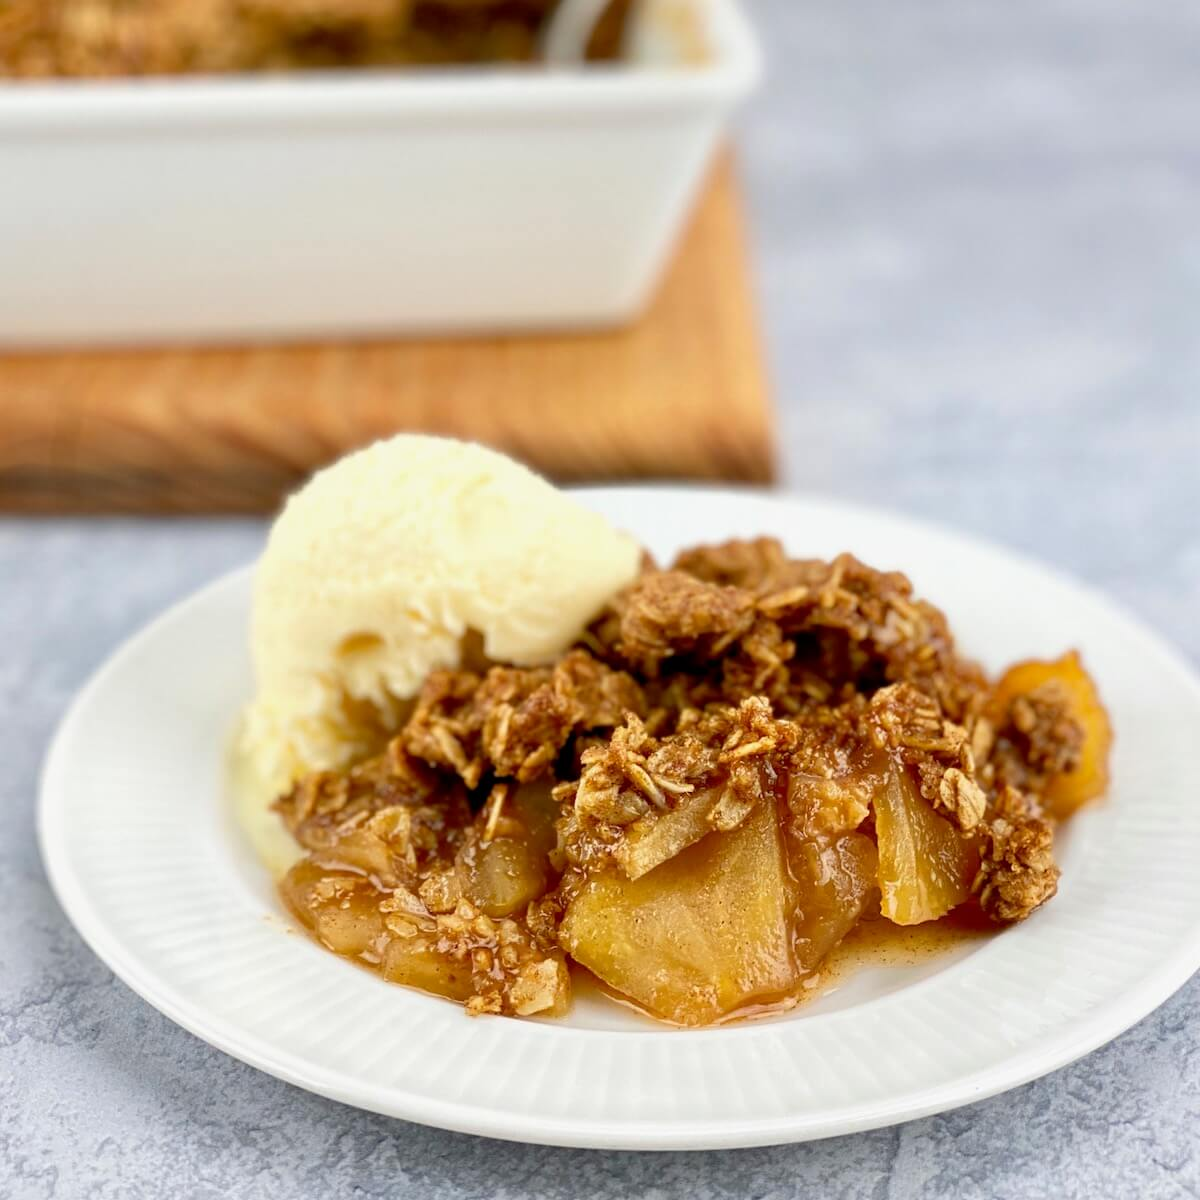 serving of apple crisp on white plate